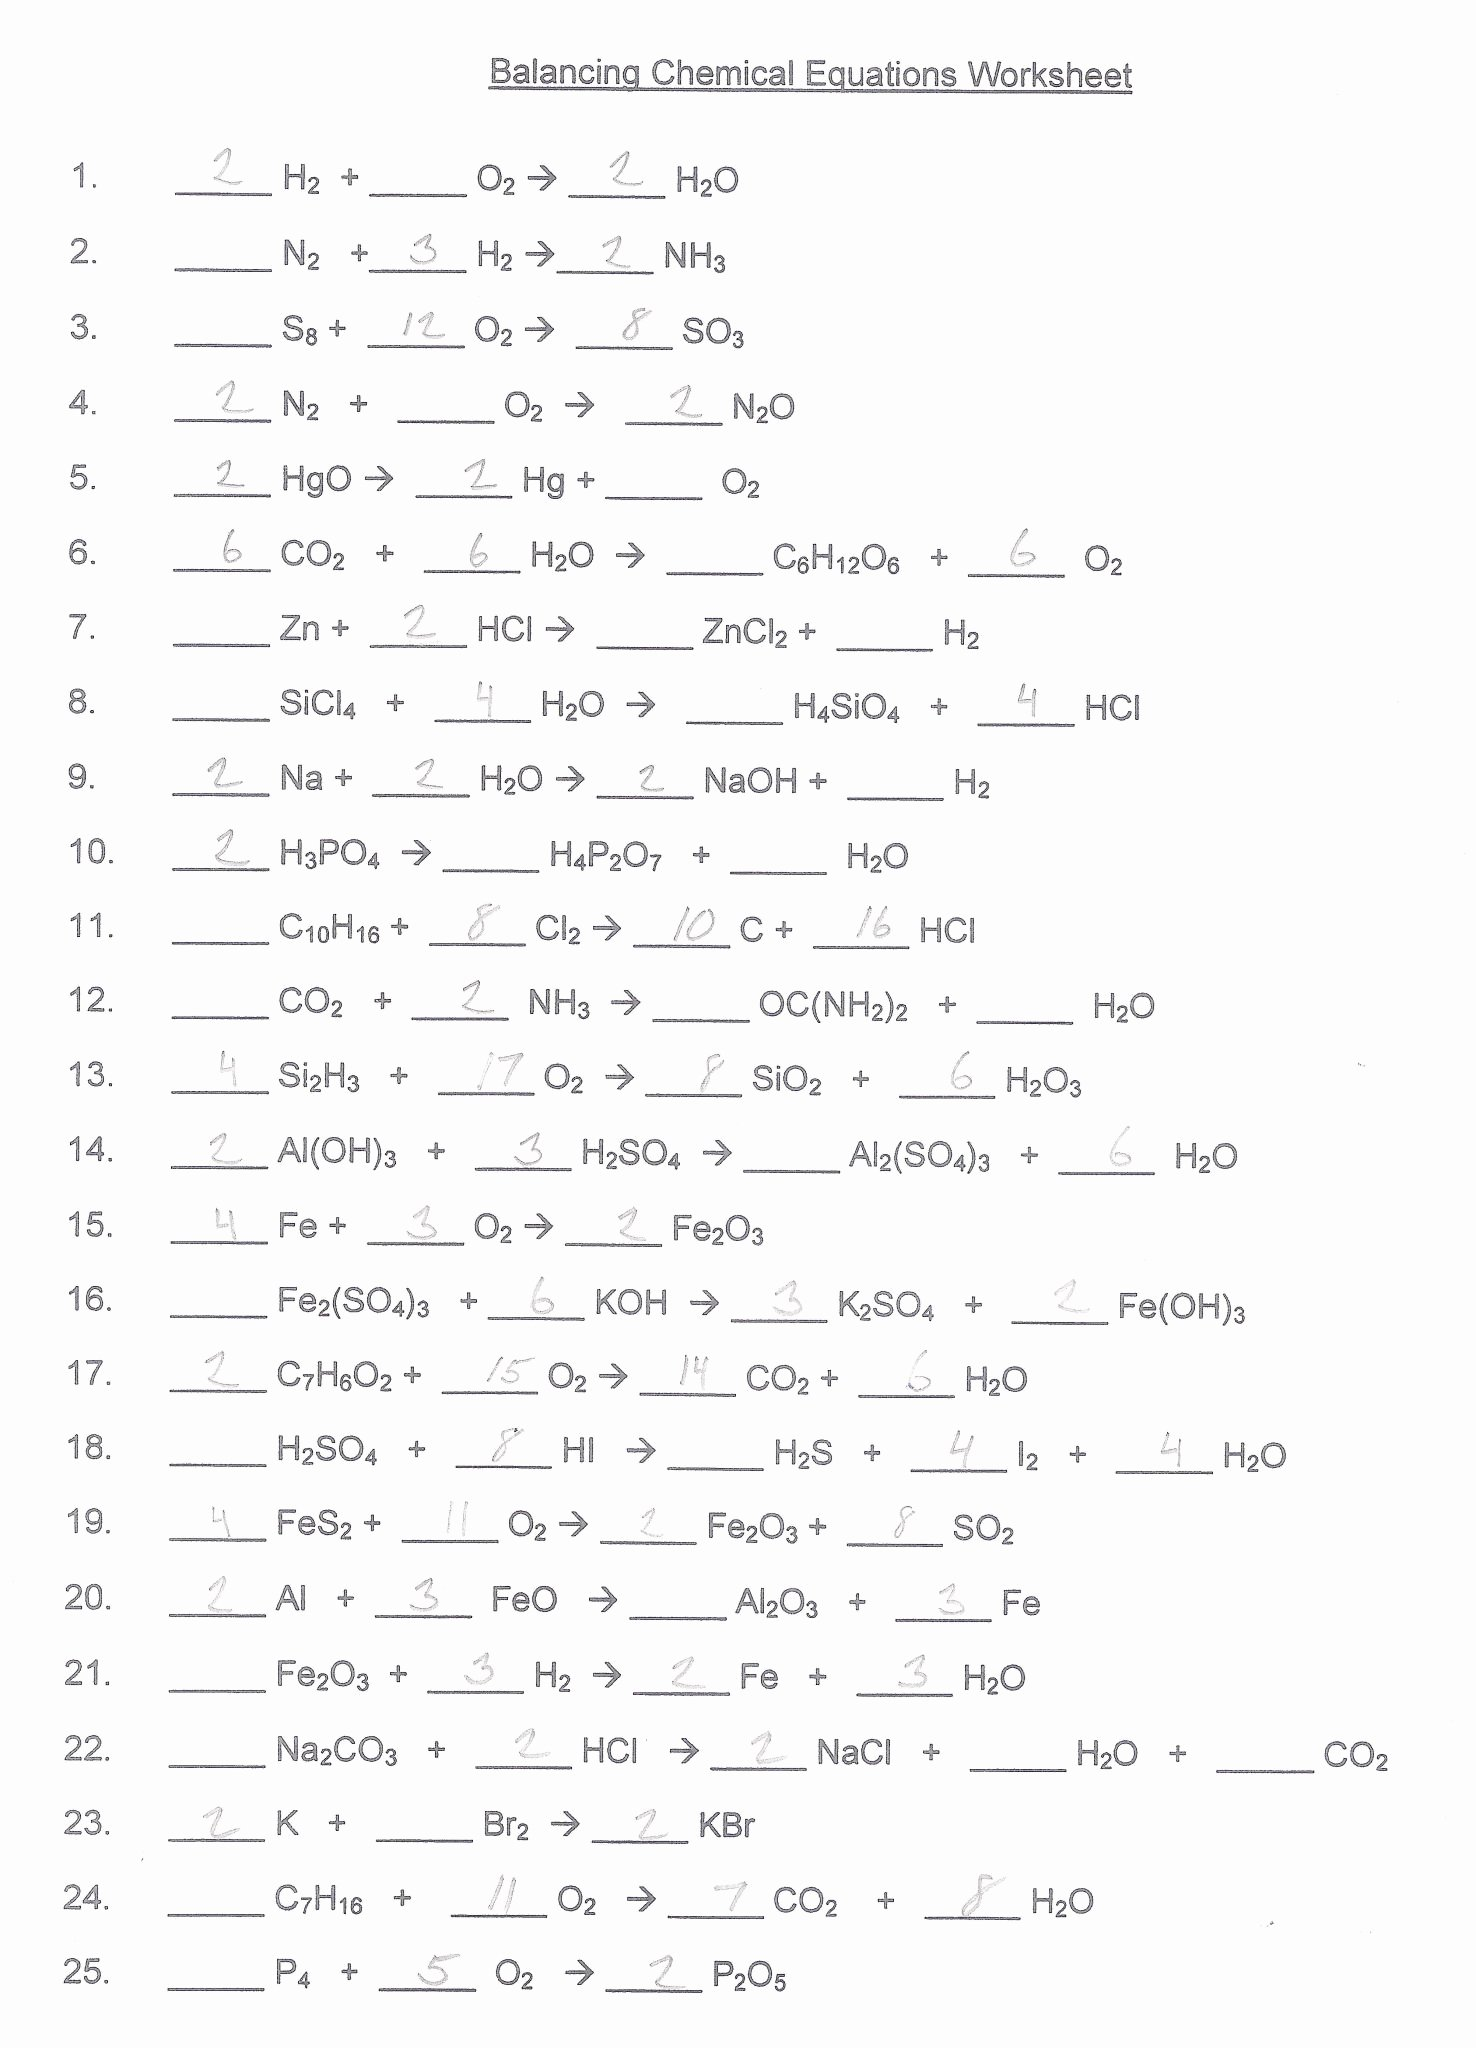 Calculating Specific Heat Worksheet Inspirational Calculating Specific Heat Worksheet Answers